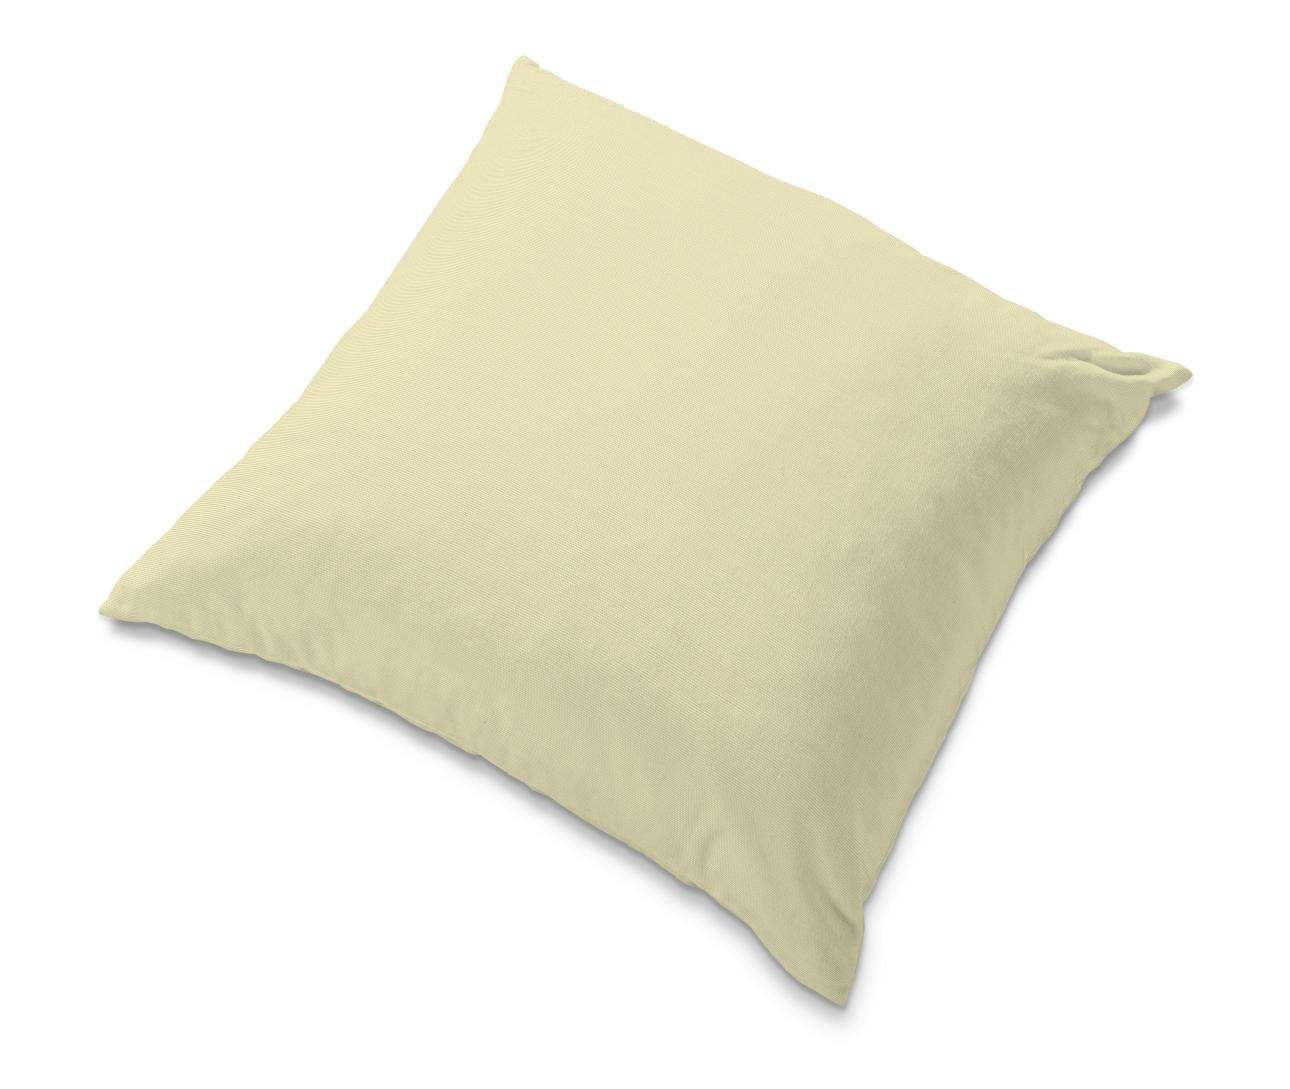 Tomelilla cushion cover 55 x 55 cm (22 x 22 inch) in collection Cotton Panama, fabric: 702-29